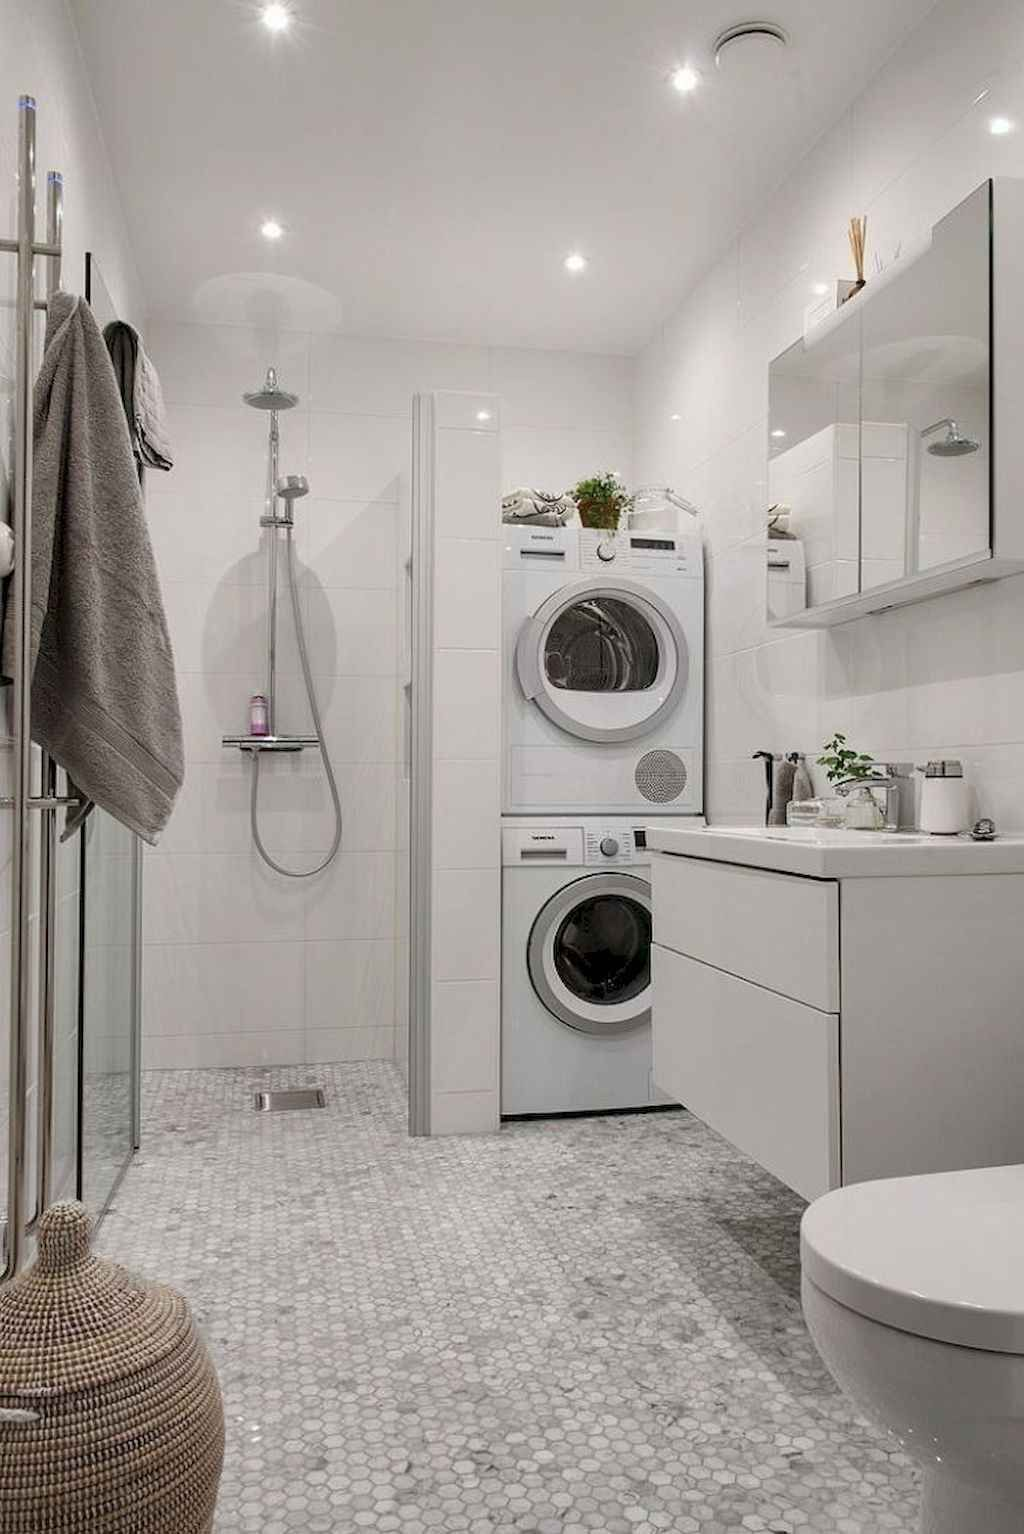 59 functional small laundry room design ideas  modern